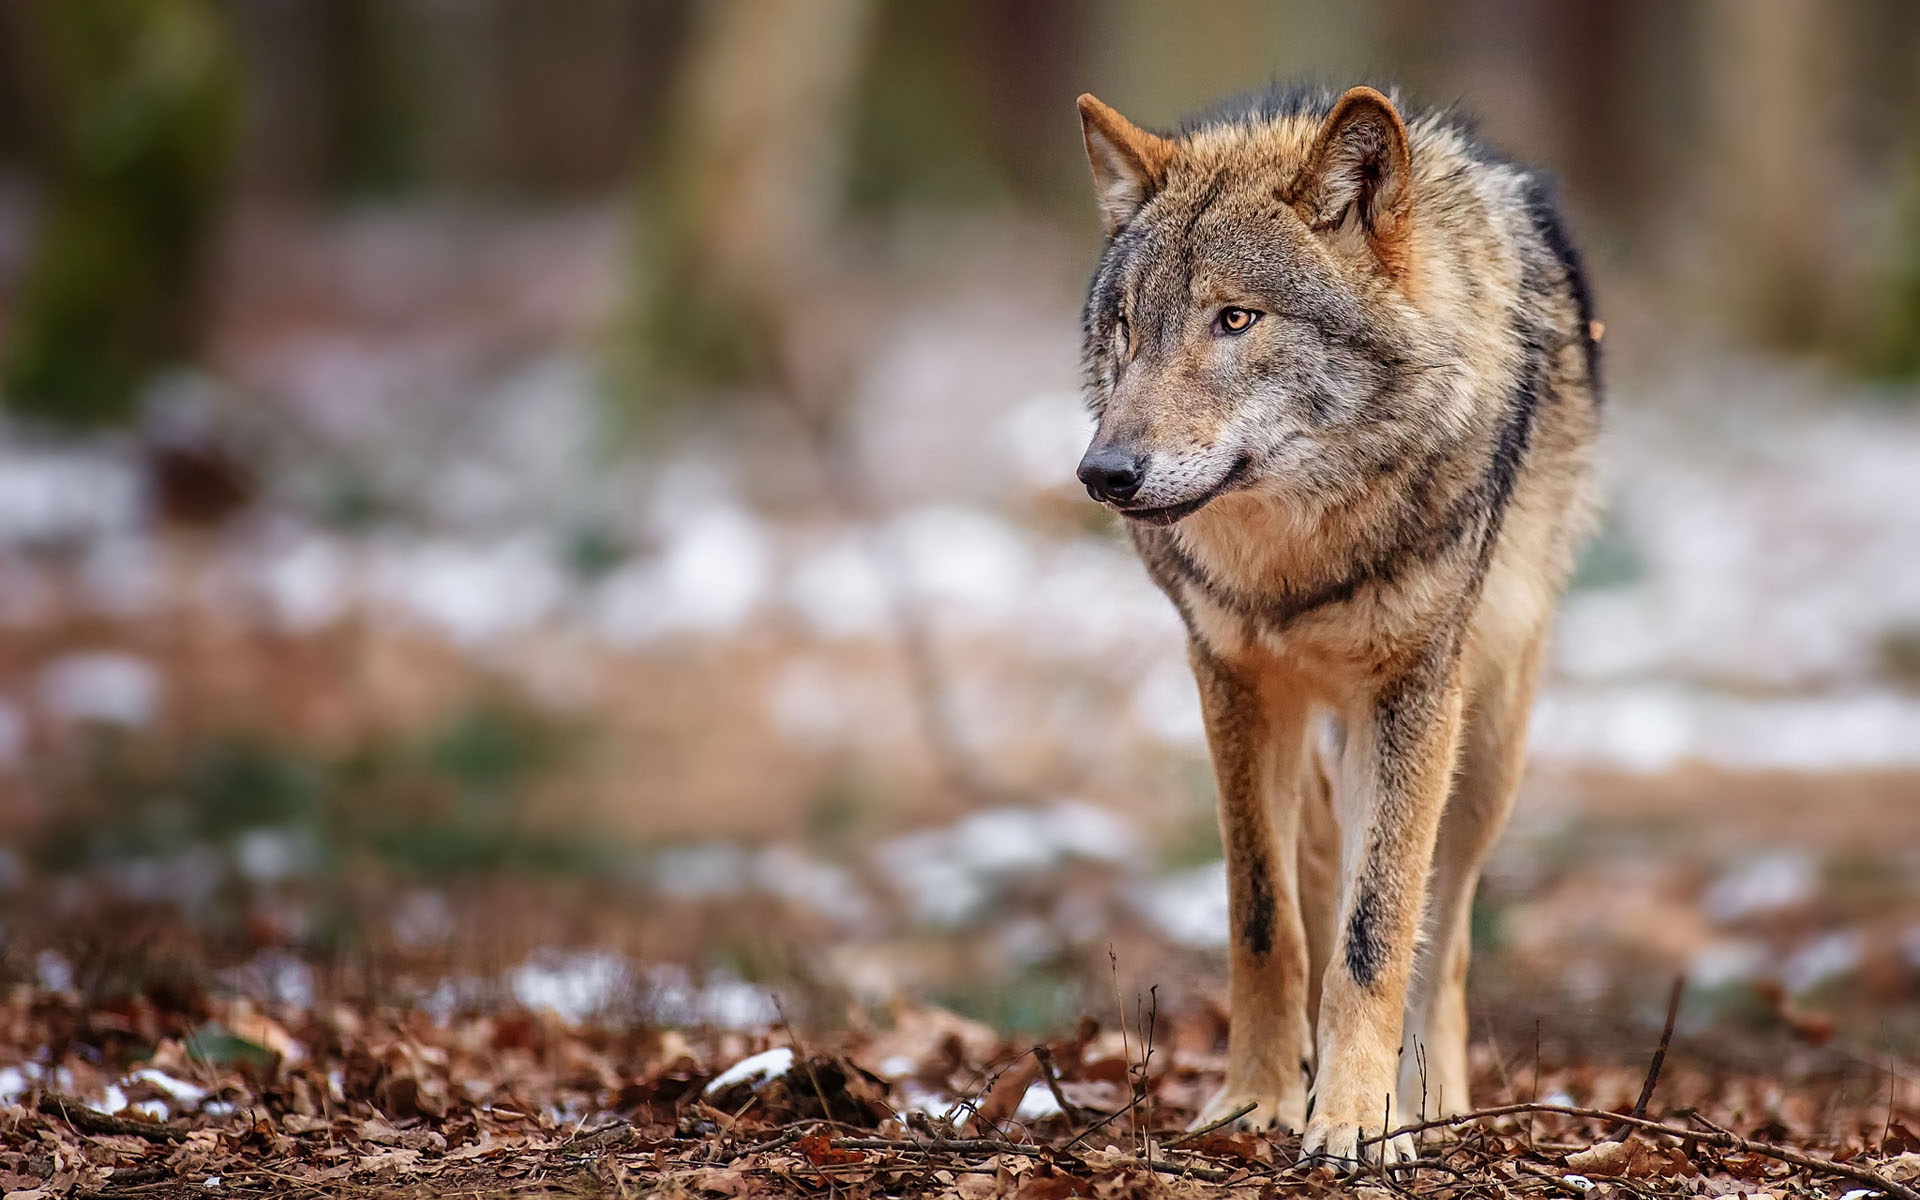 Wild Animal Wolf Wallpapers Hd 51074 Wallpaper: Wolf Full HD Wallpaper And Background Image